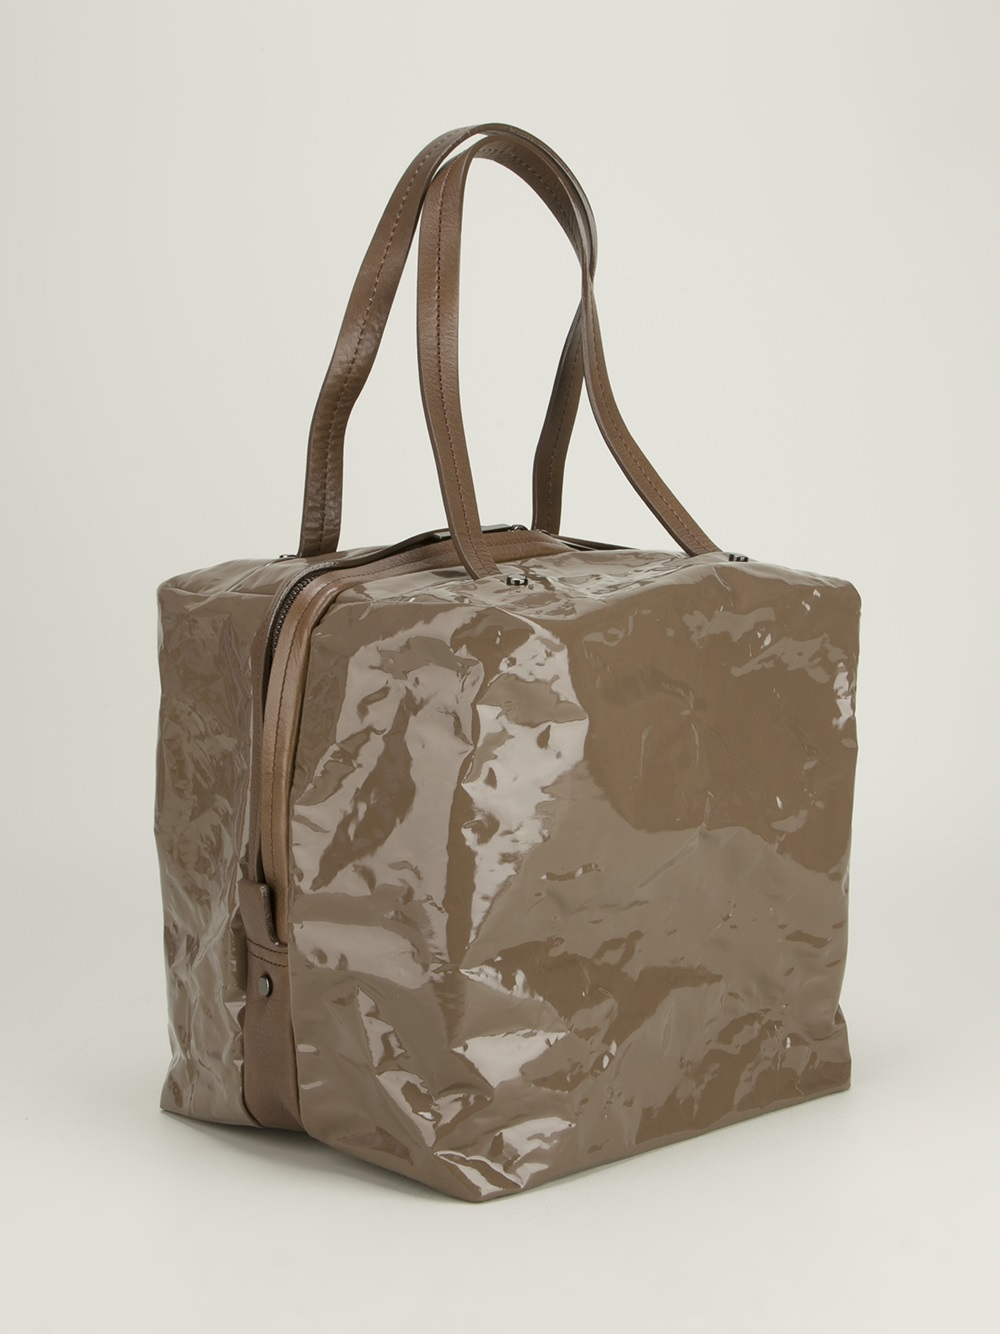 Lyst - Pleats Please Issey Miyake Structured Pvc Bag in Brown 975ffa6a83